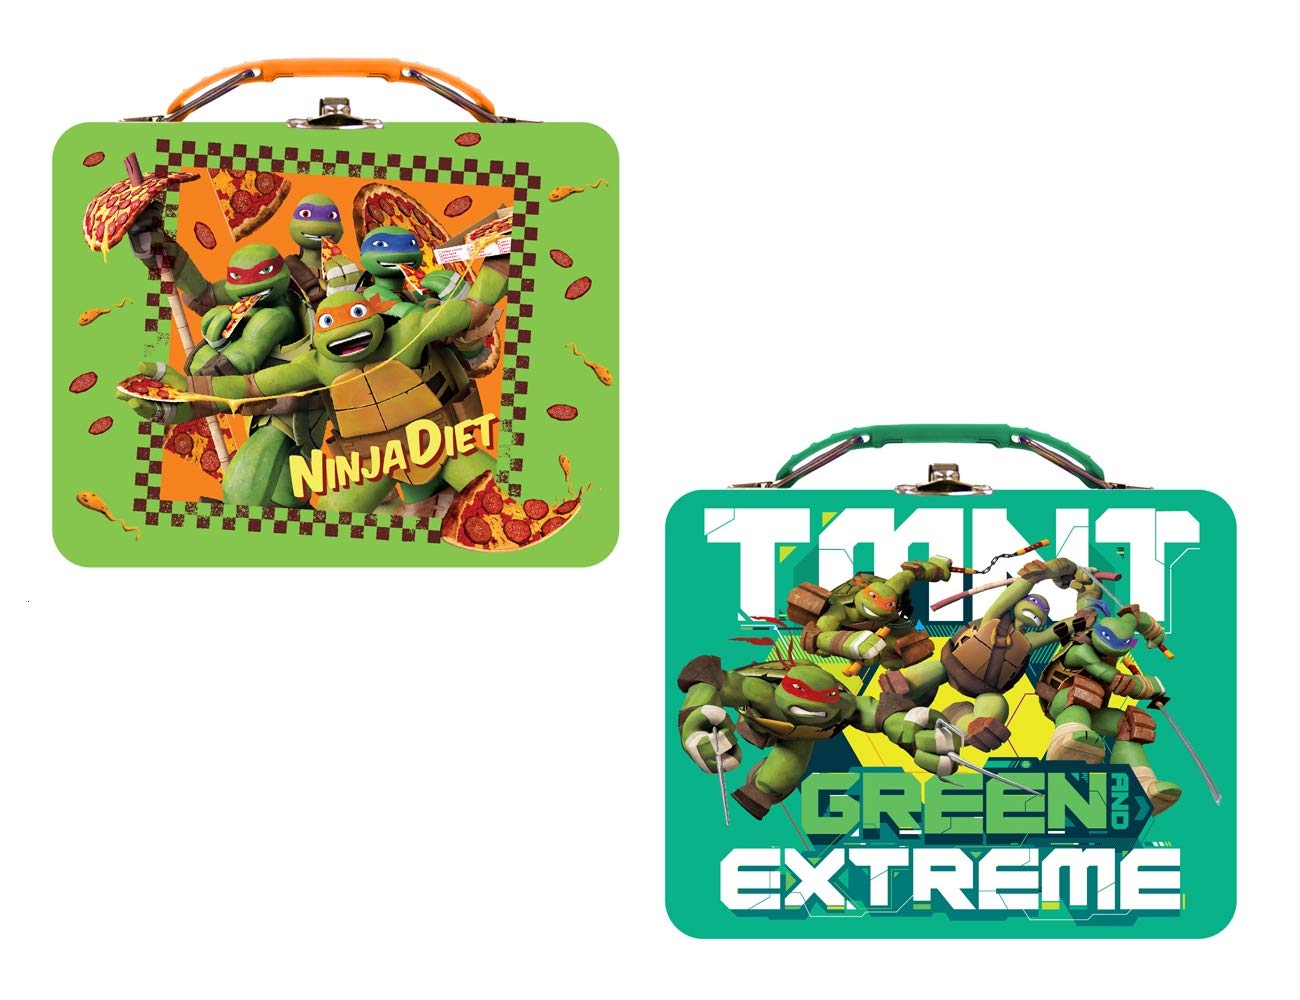 [2-Pack] Teenage Mutant Ninja Turtles Tin Metal Lunch Box Carry All, Ninja Diet & Green Extreme